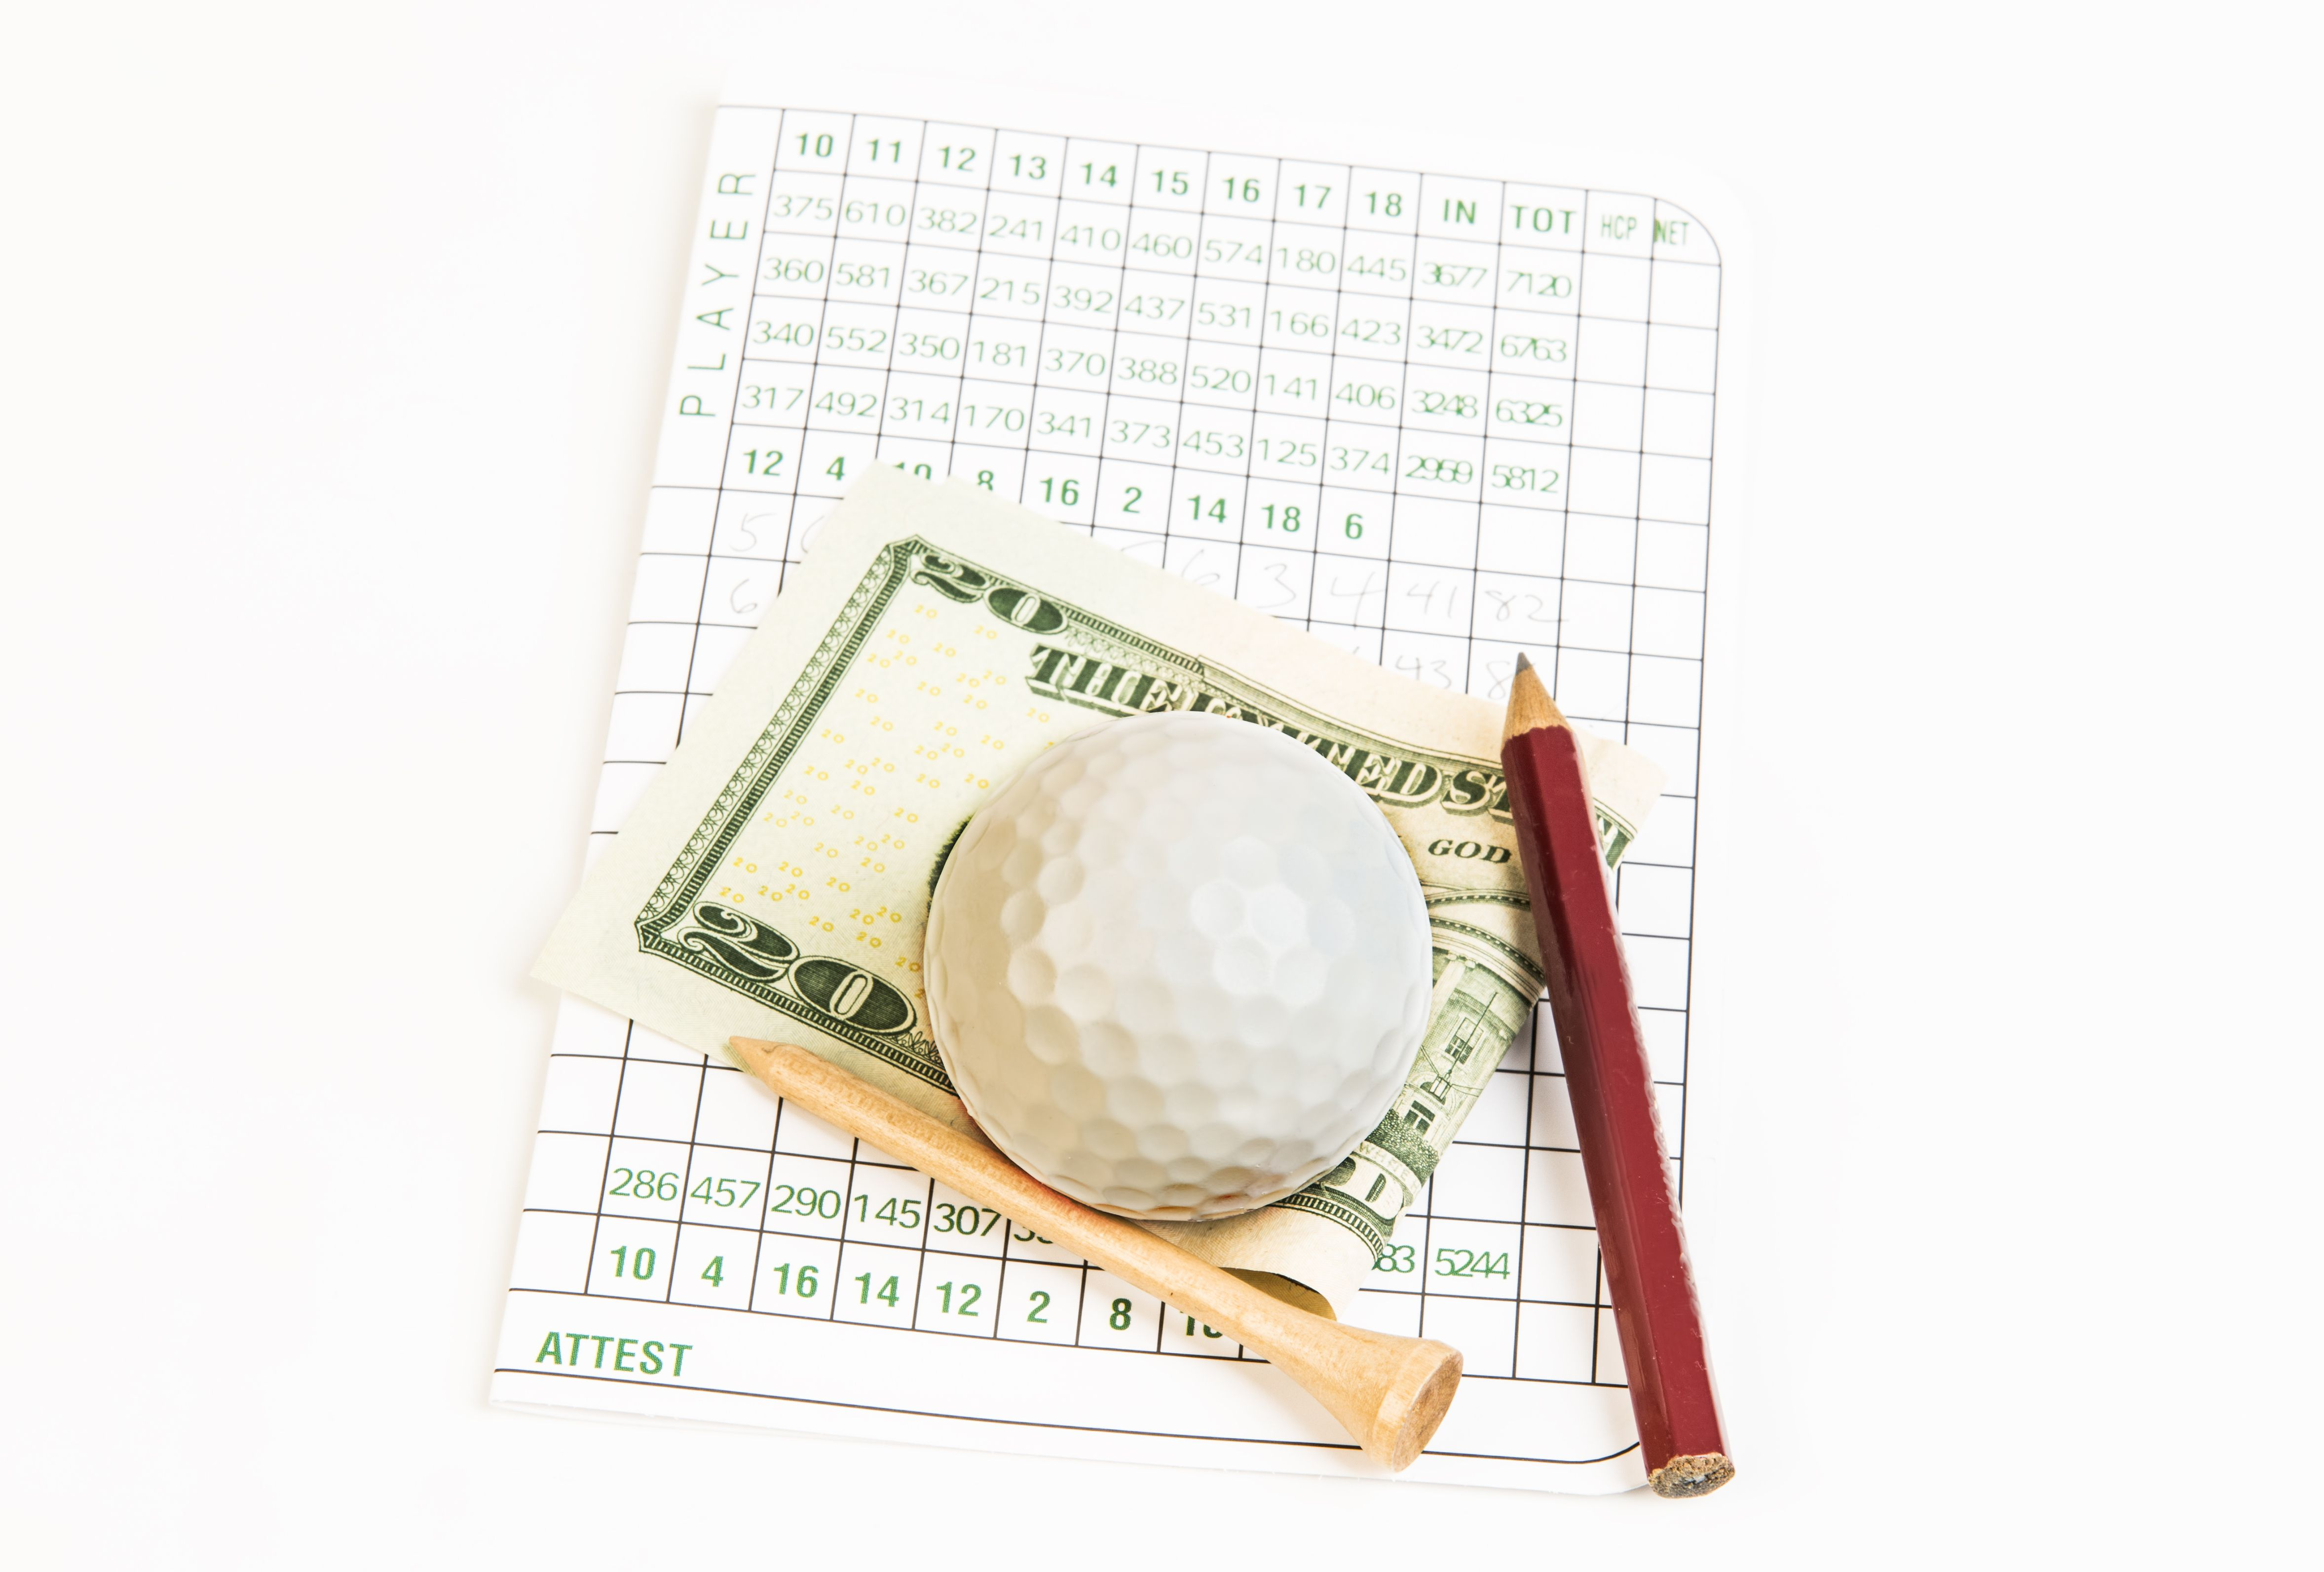 Golf betting games for 2 players horse race betting strategies